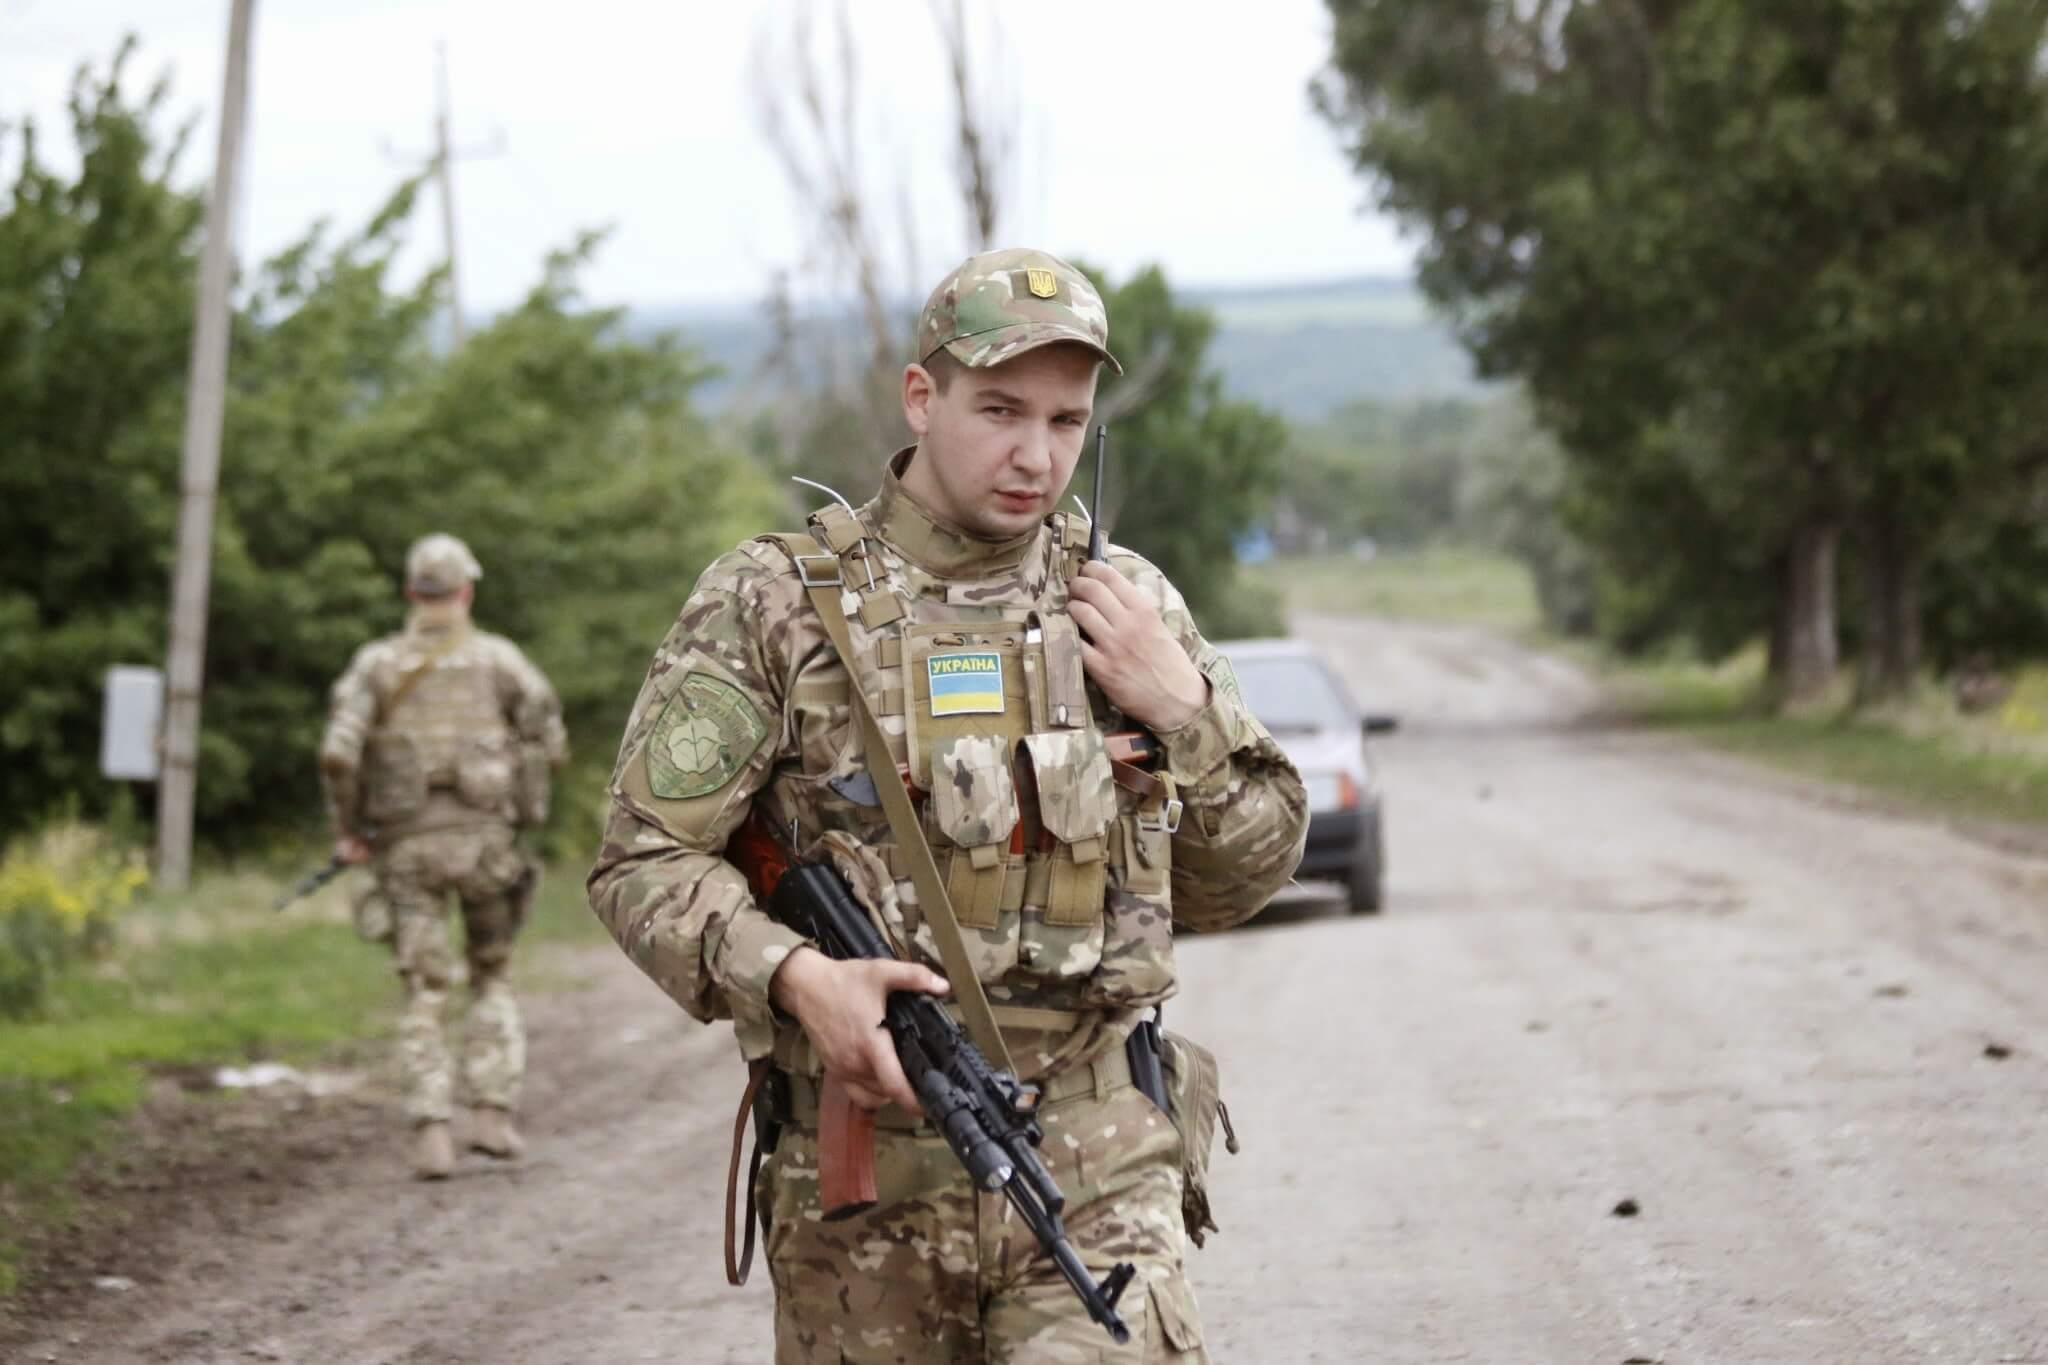 Kuzio-Ukrainian soldier during the war in Donbas in 2014. Wikimediacommons2